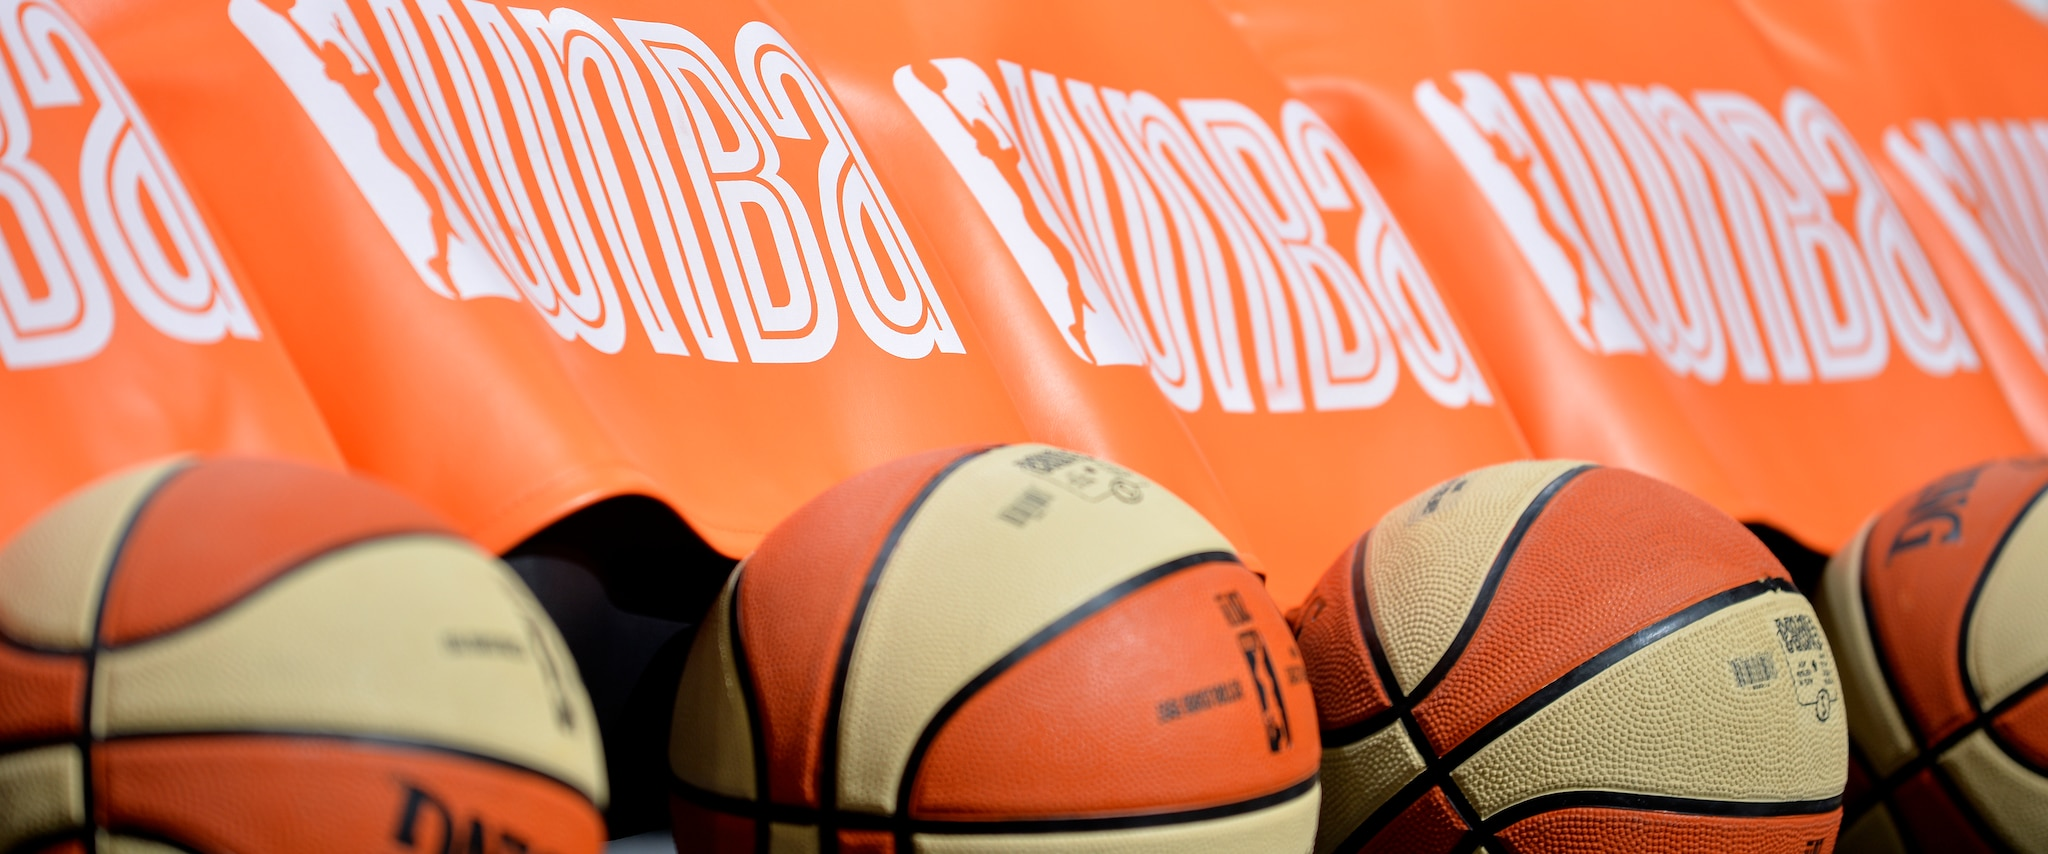 WNBA Draft 2019 Presented By State Farm To Be Held April 10